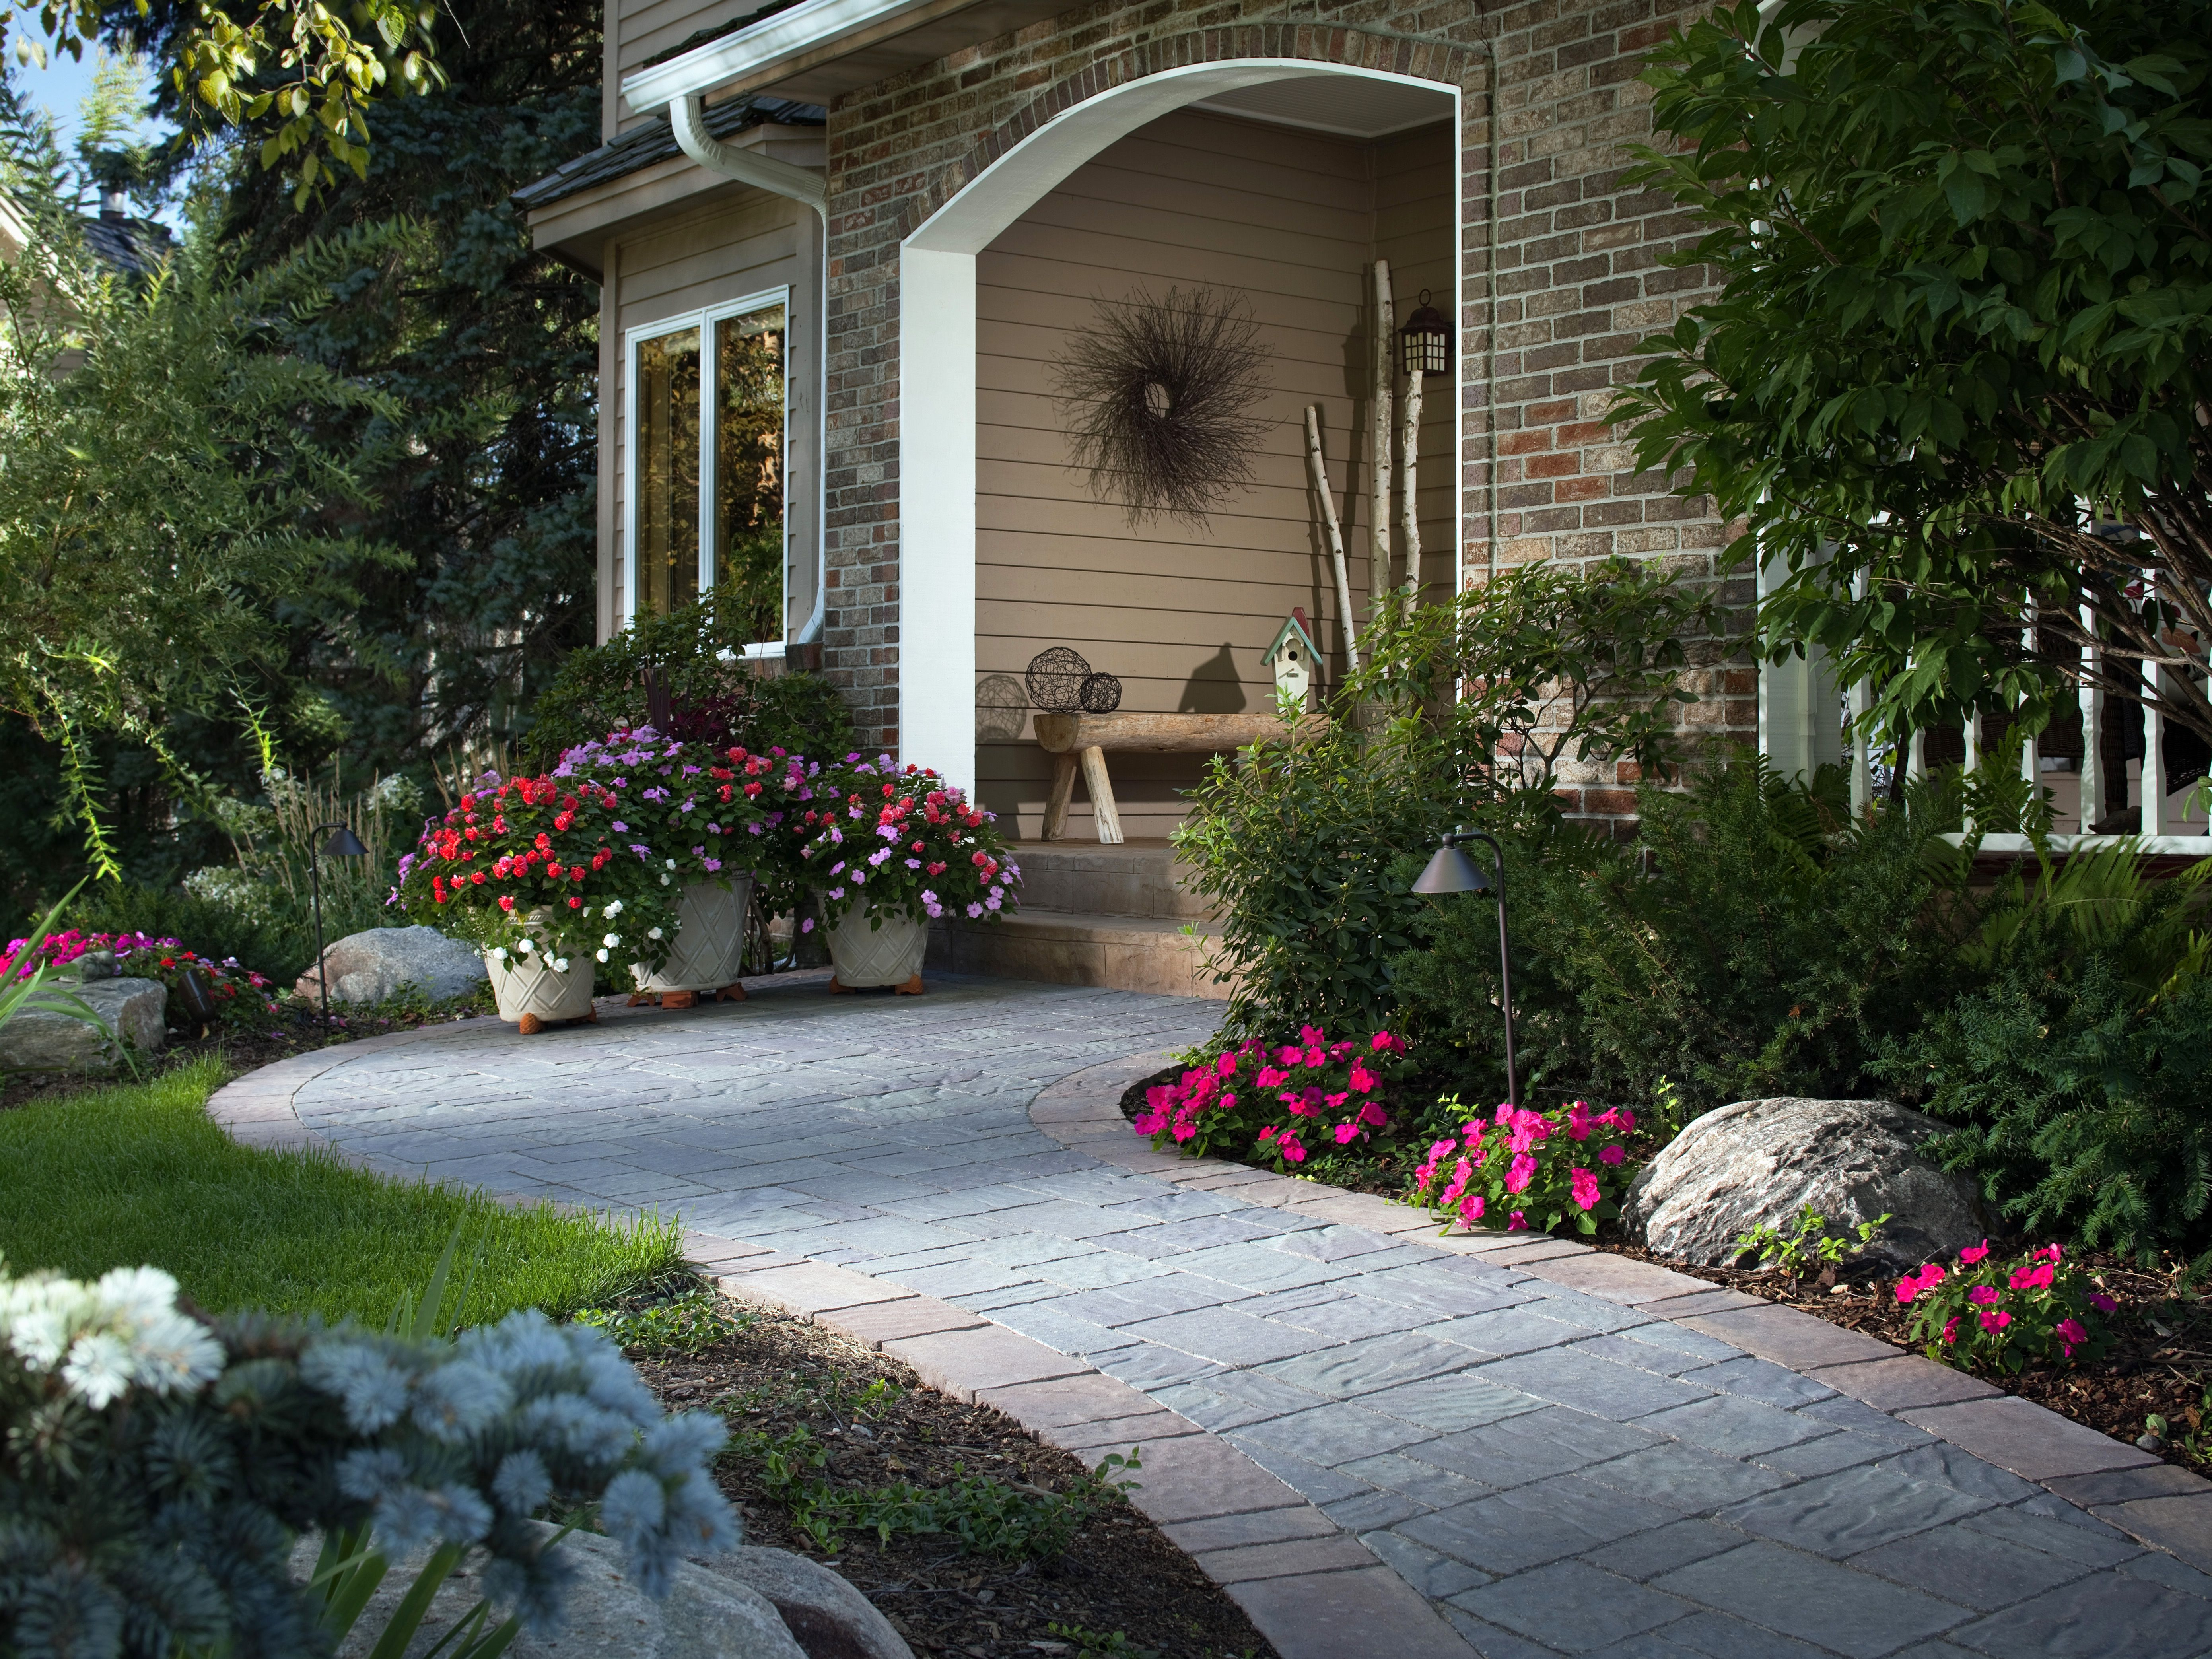 Charming Hgtv Landscaping Ideas Front Yard Part - 2: Four Beautiful Landscape Updates. Front Yard LandscapingLandscaping IdeasPorch  ...